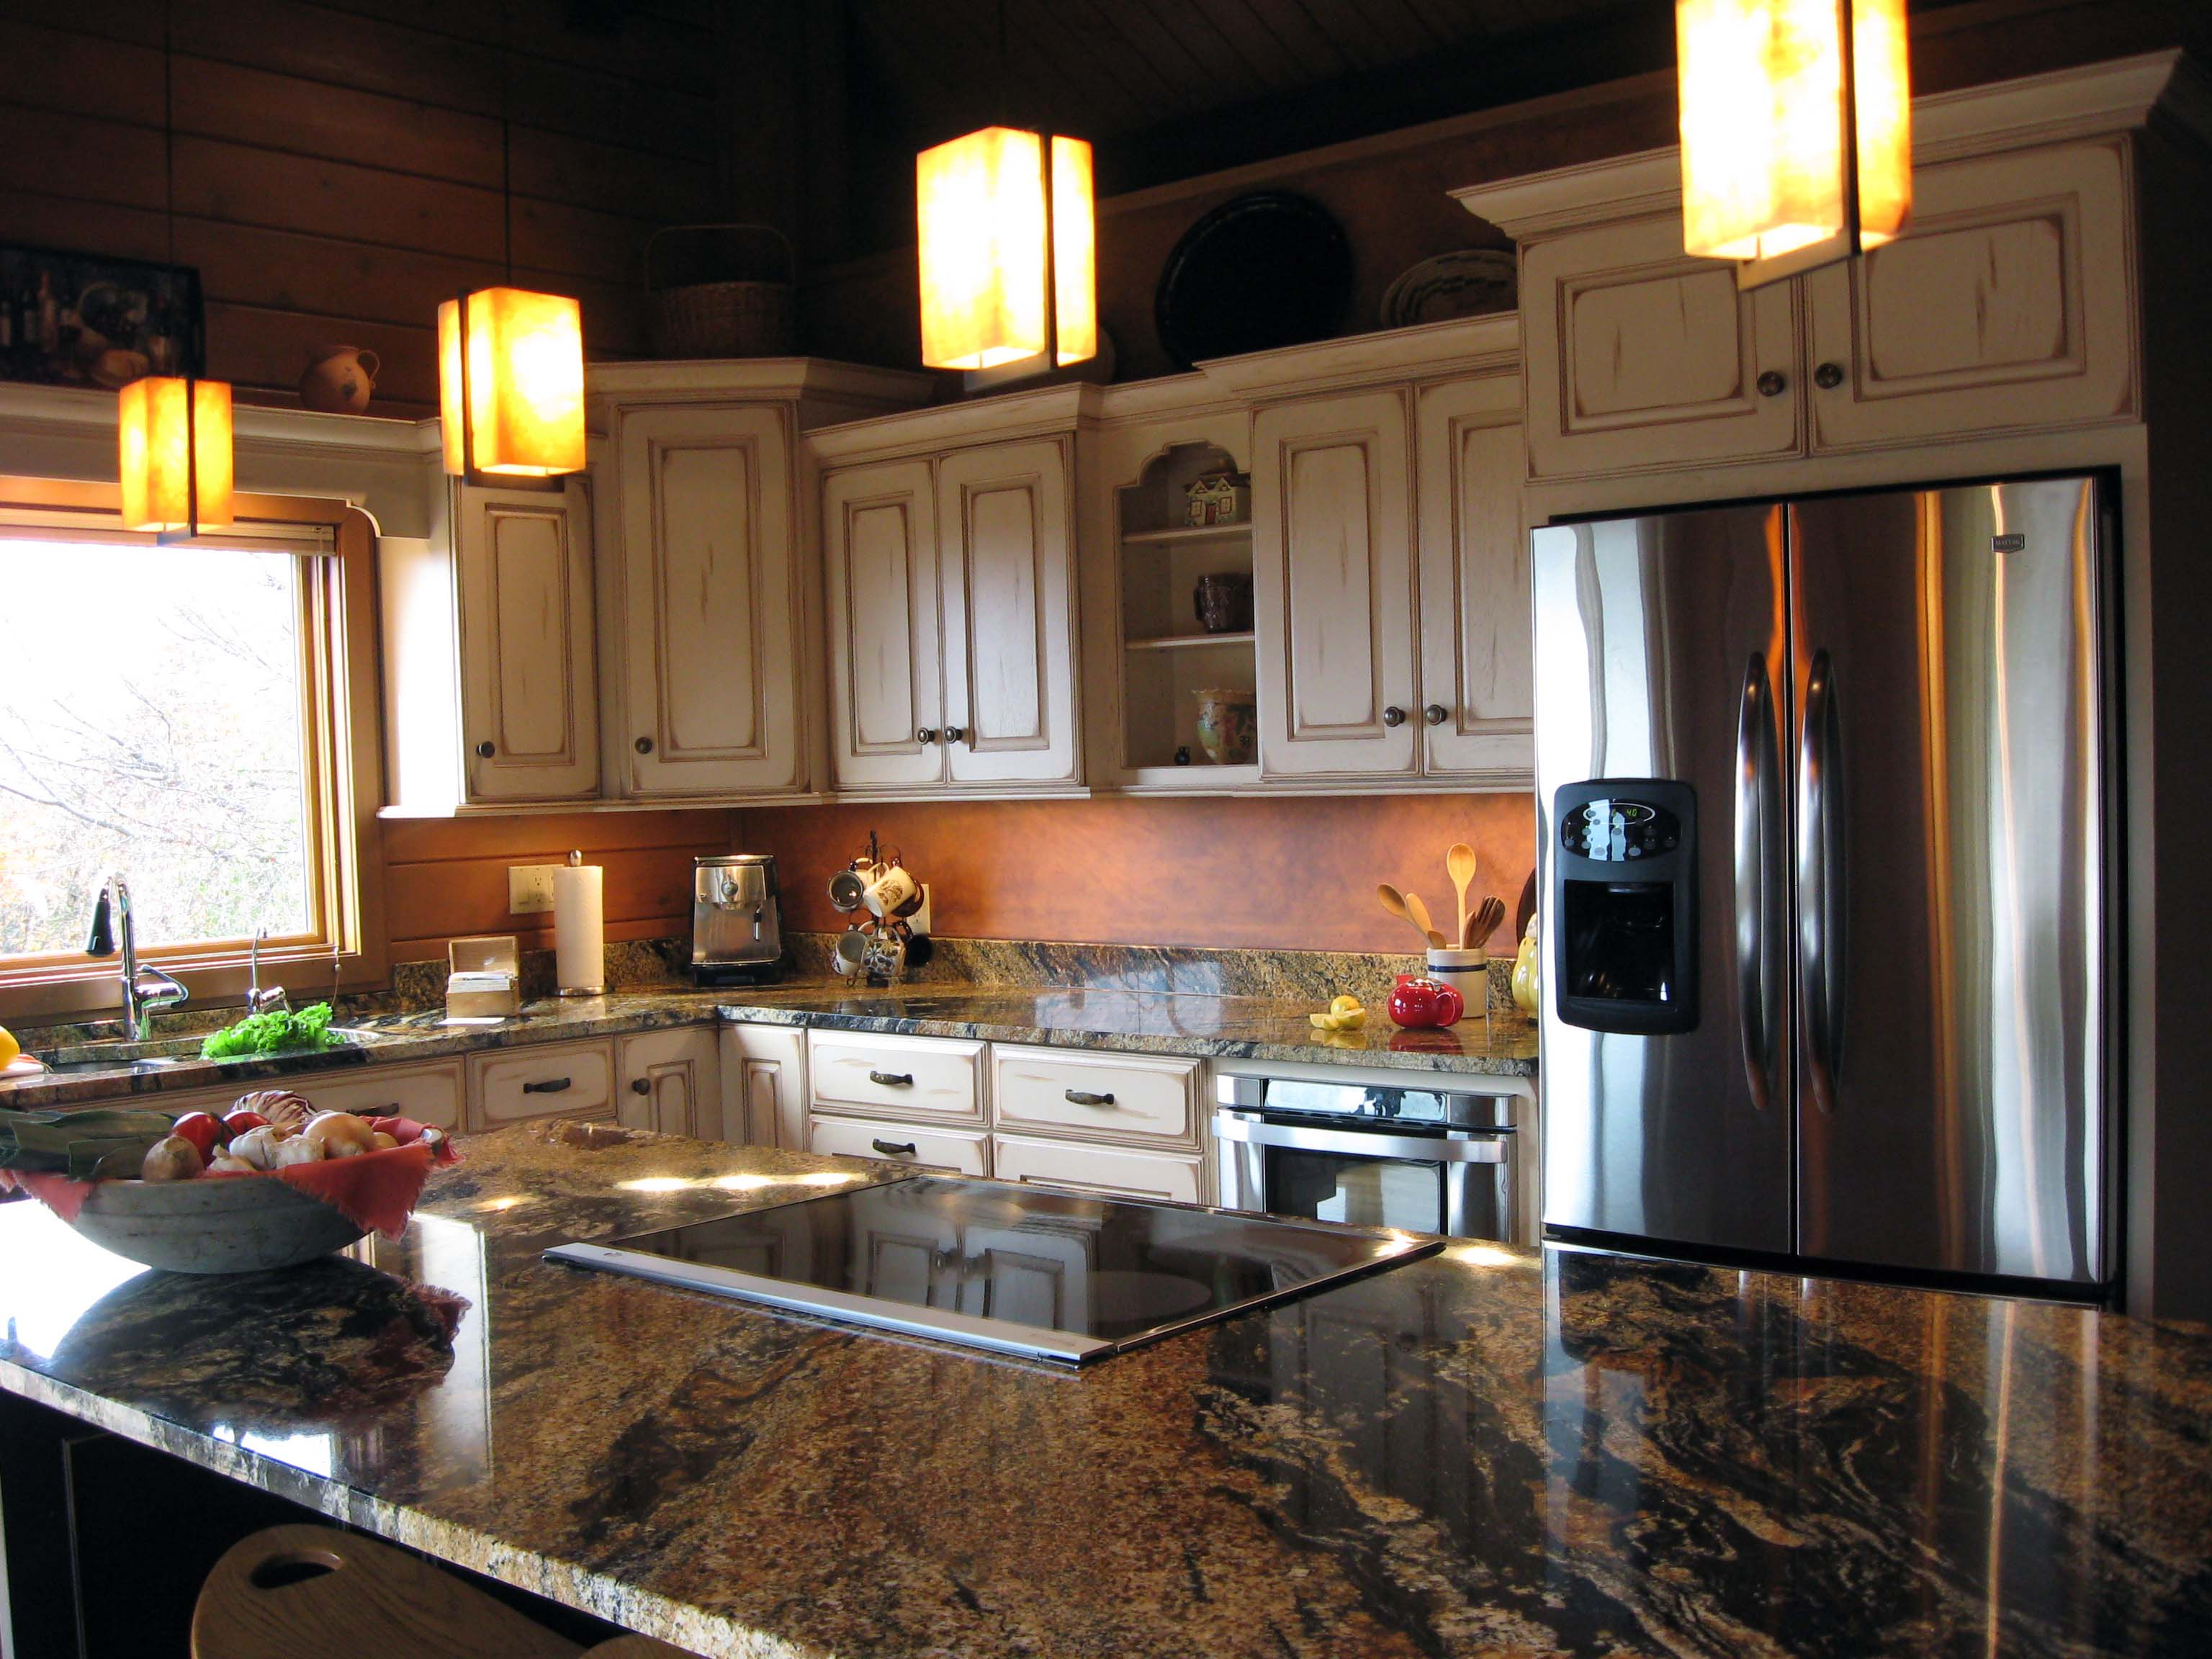 Kalamazoo Custom Kitchens and Baths, Kalamazoo, MI